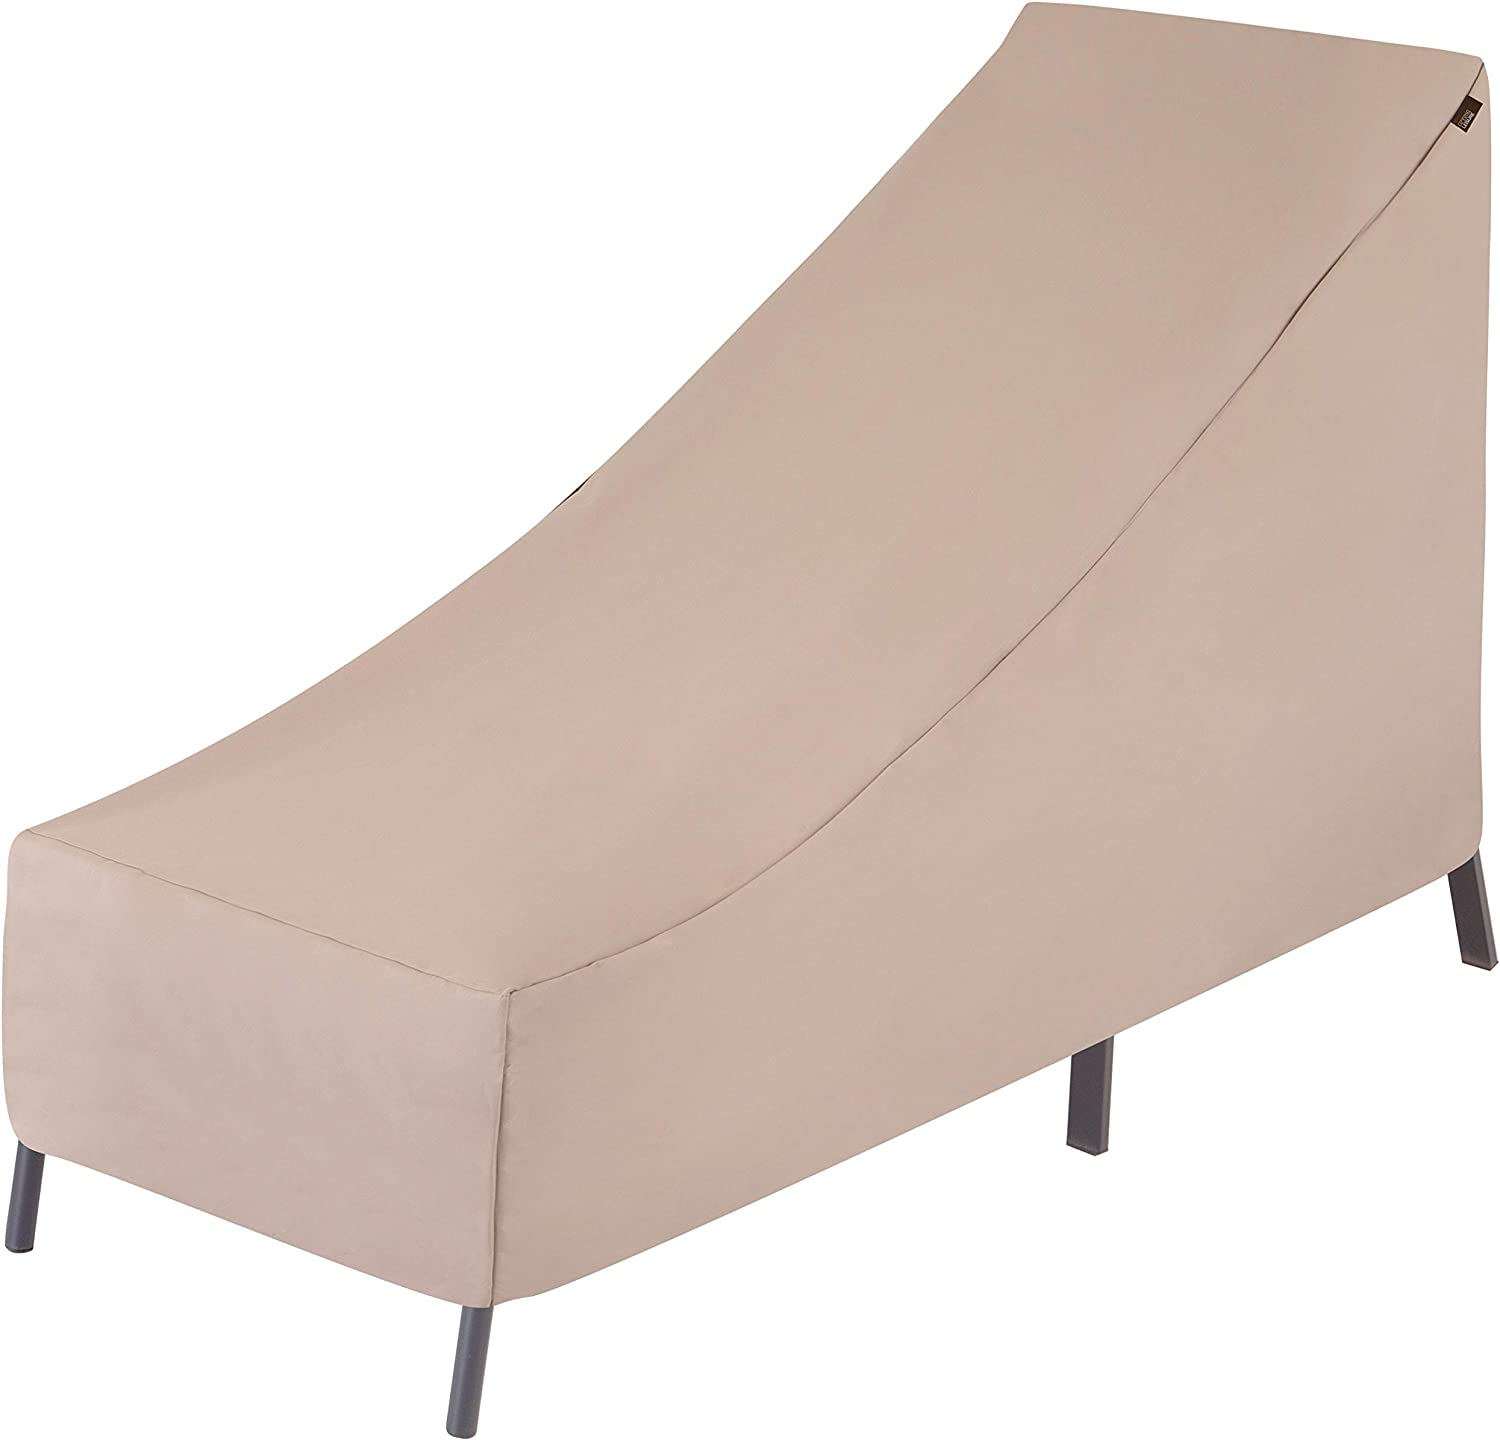 Modern Leisure 2934 Chalet Patio Chaise Lounge, Outdoor Cover (65 L x 25 D x 29 H inches) Water-Resistant, Khaki/Fossil